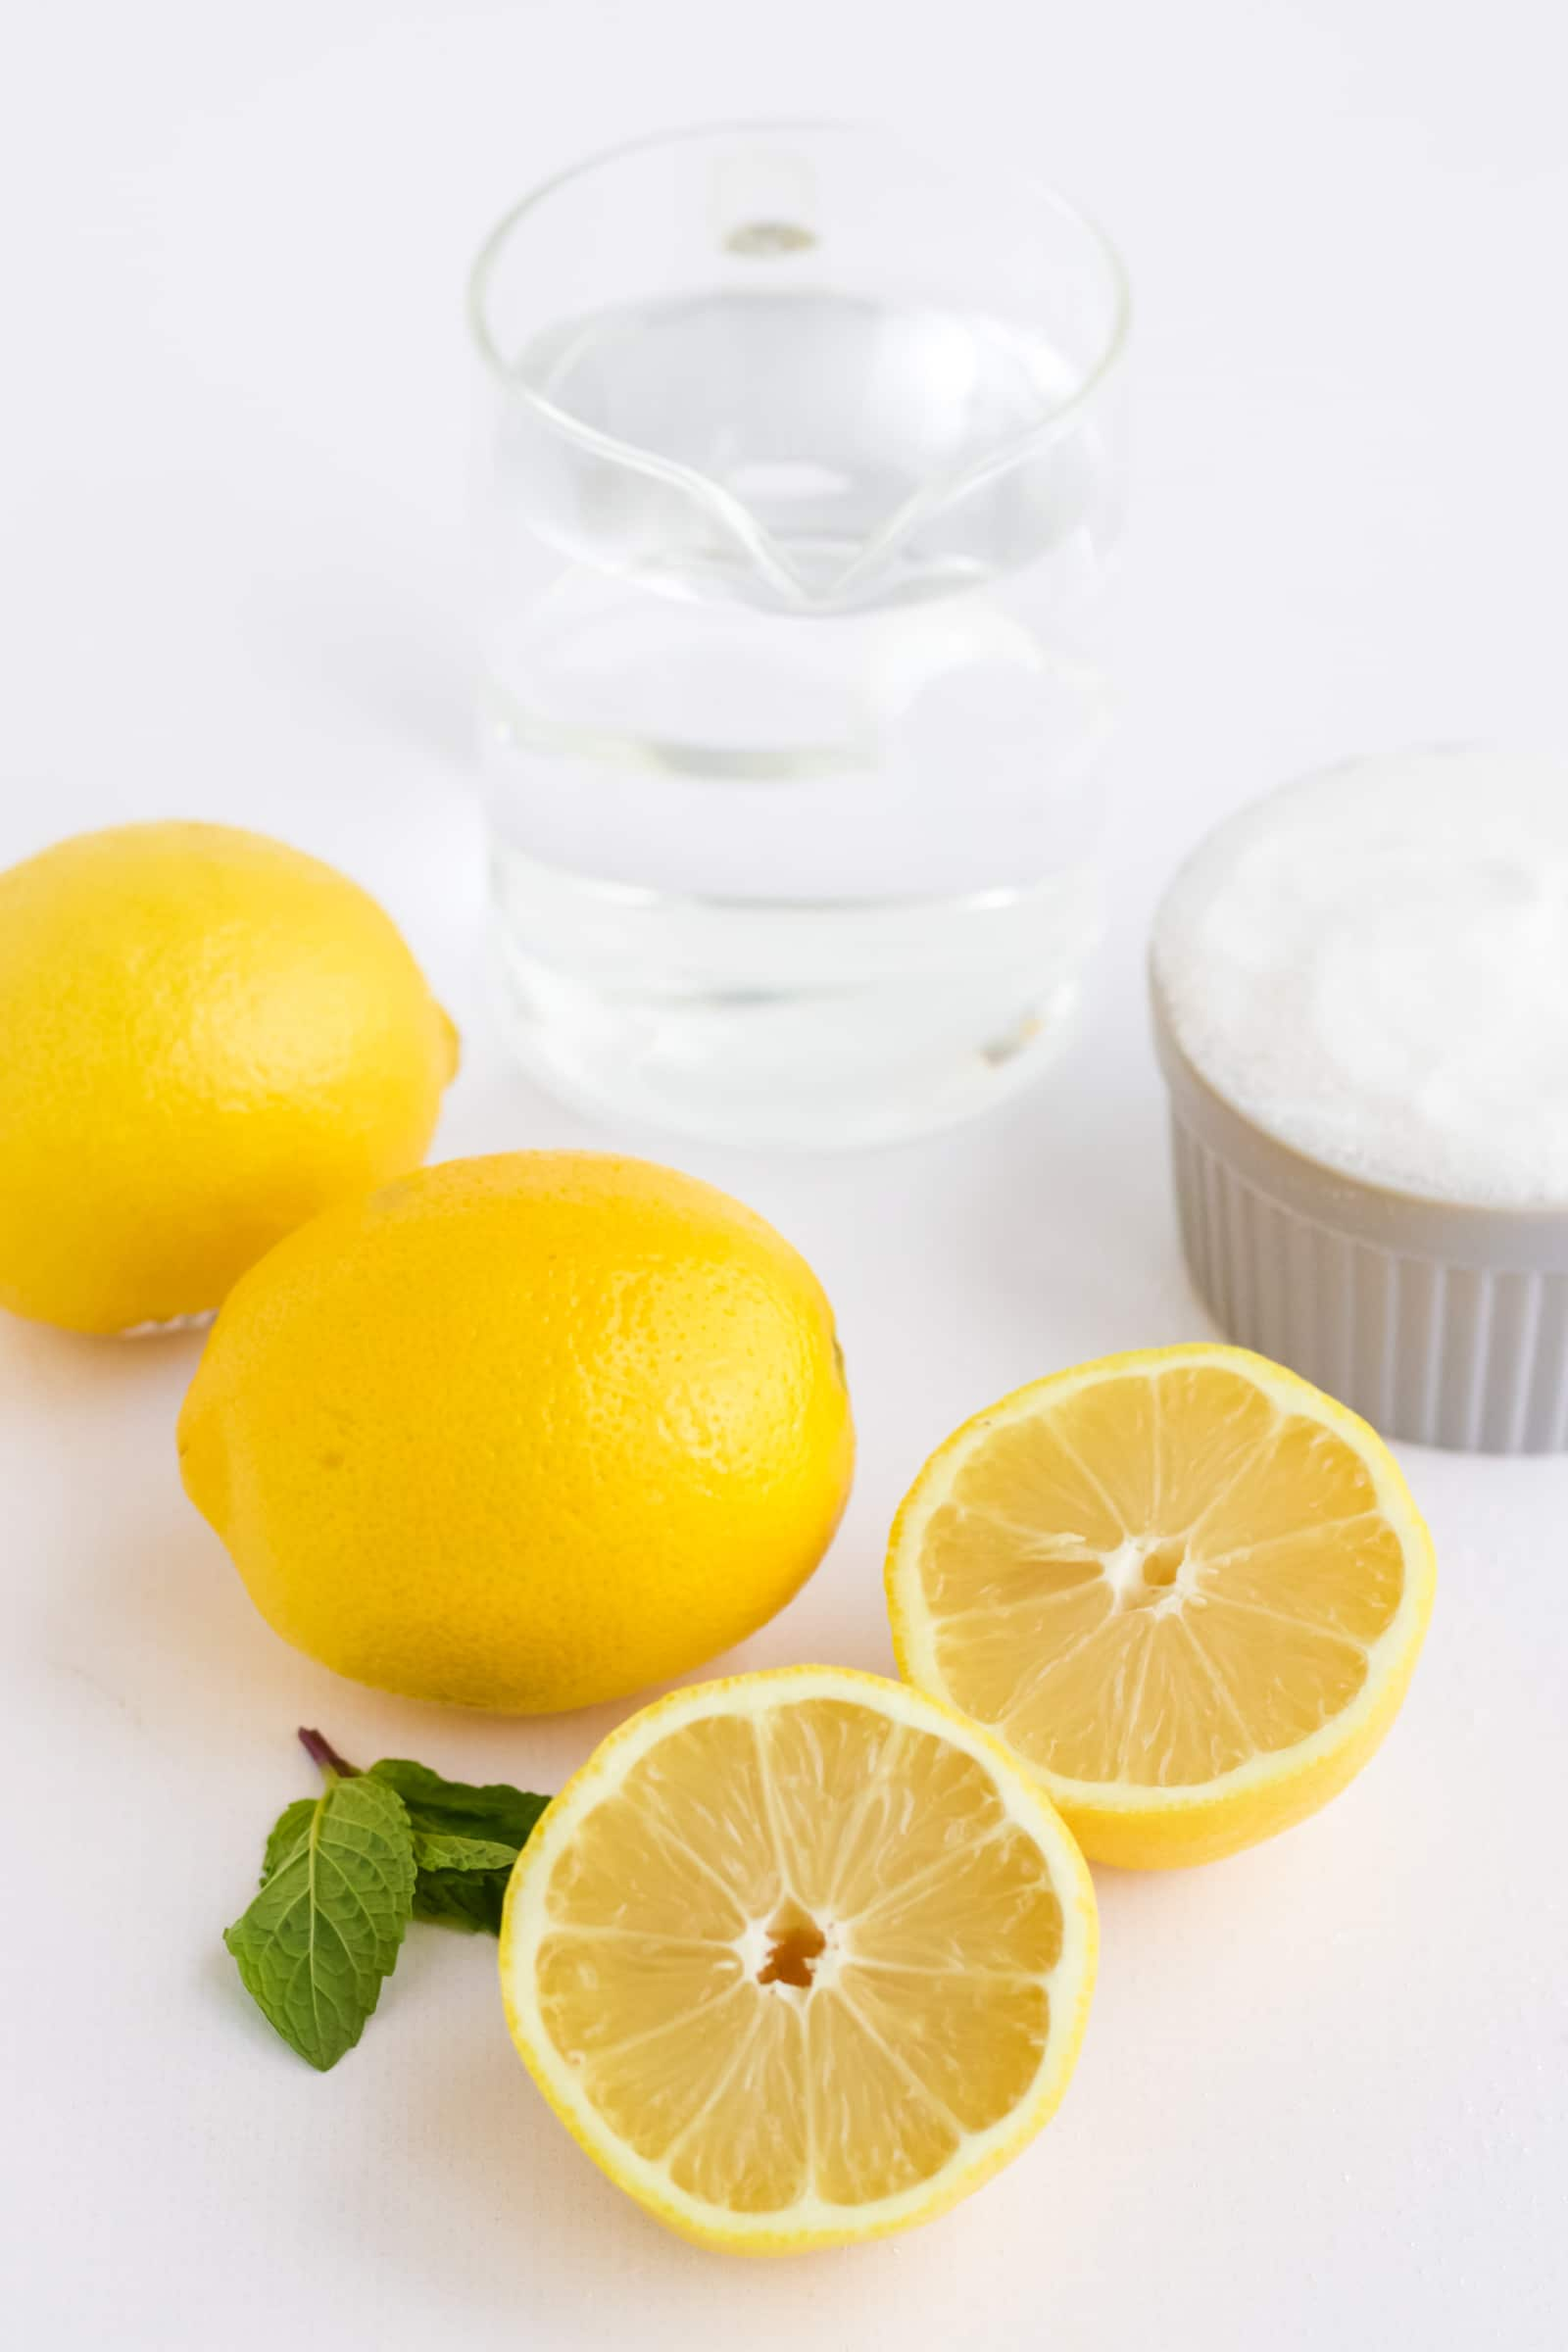 2 whole lemons 1 lemon sliced in half a pitcher of water and a bowl of sugar